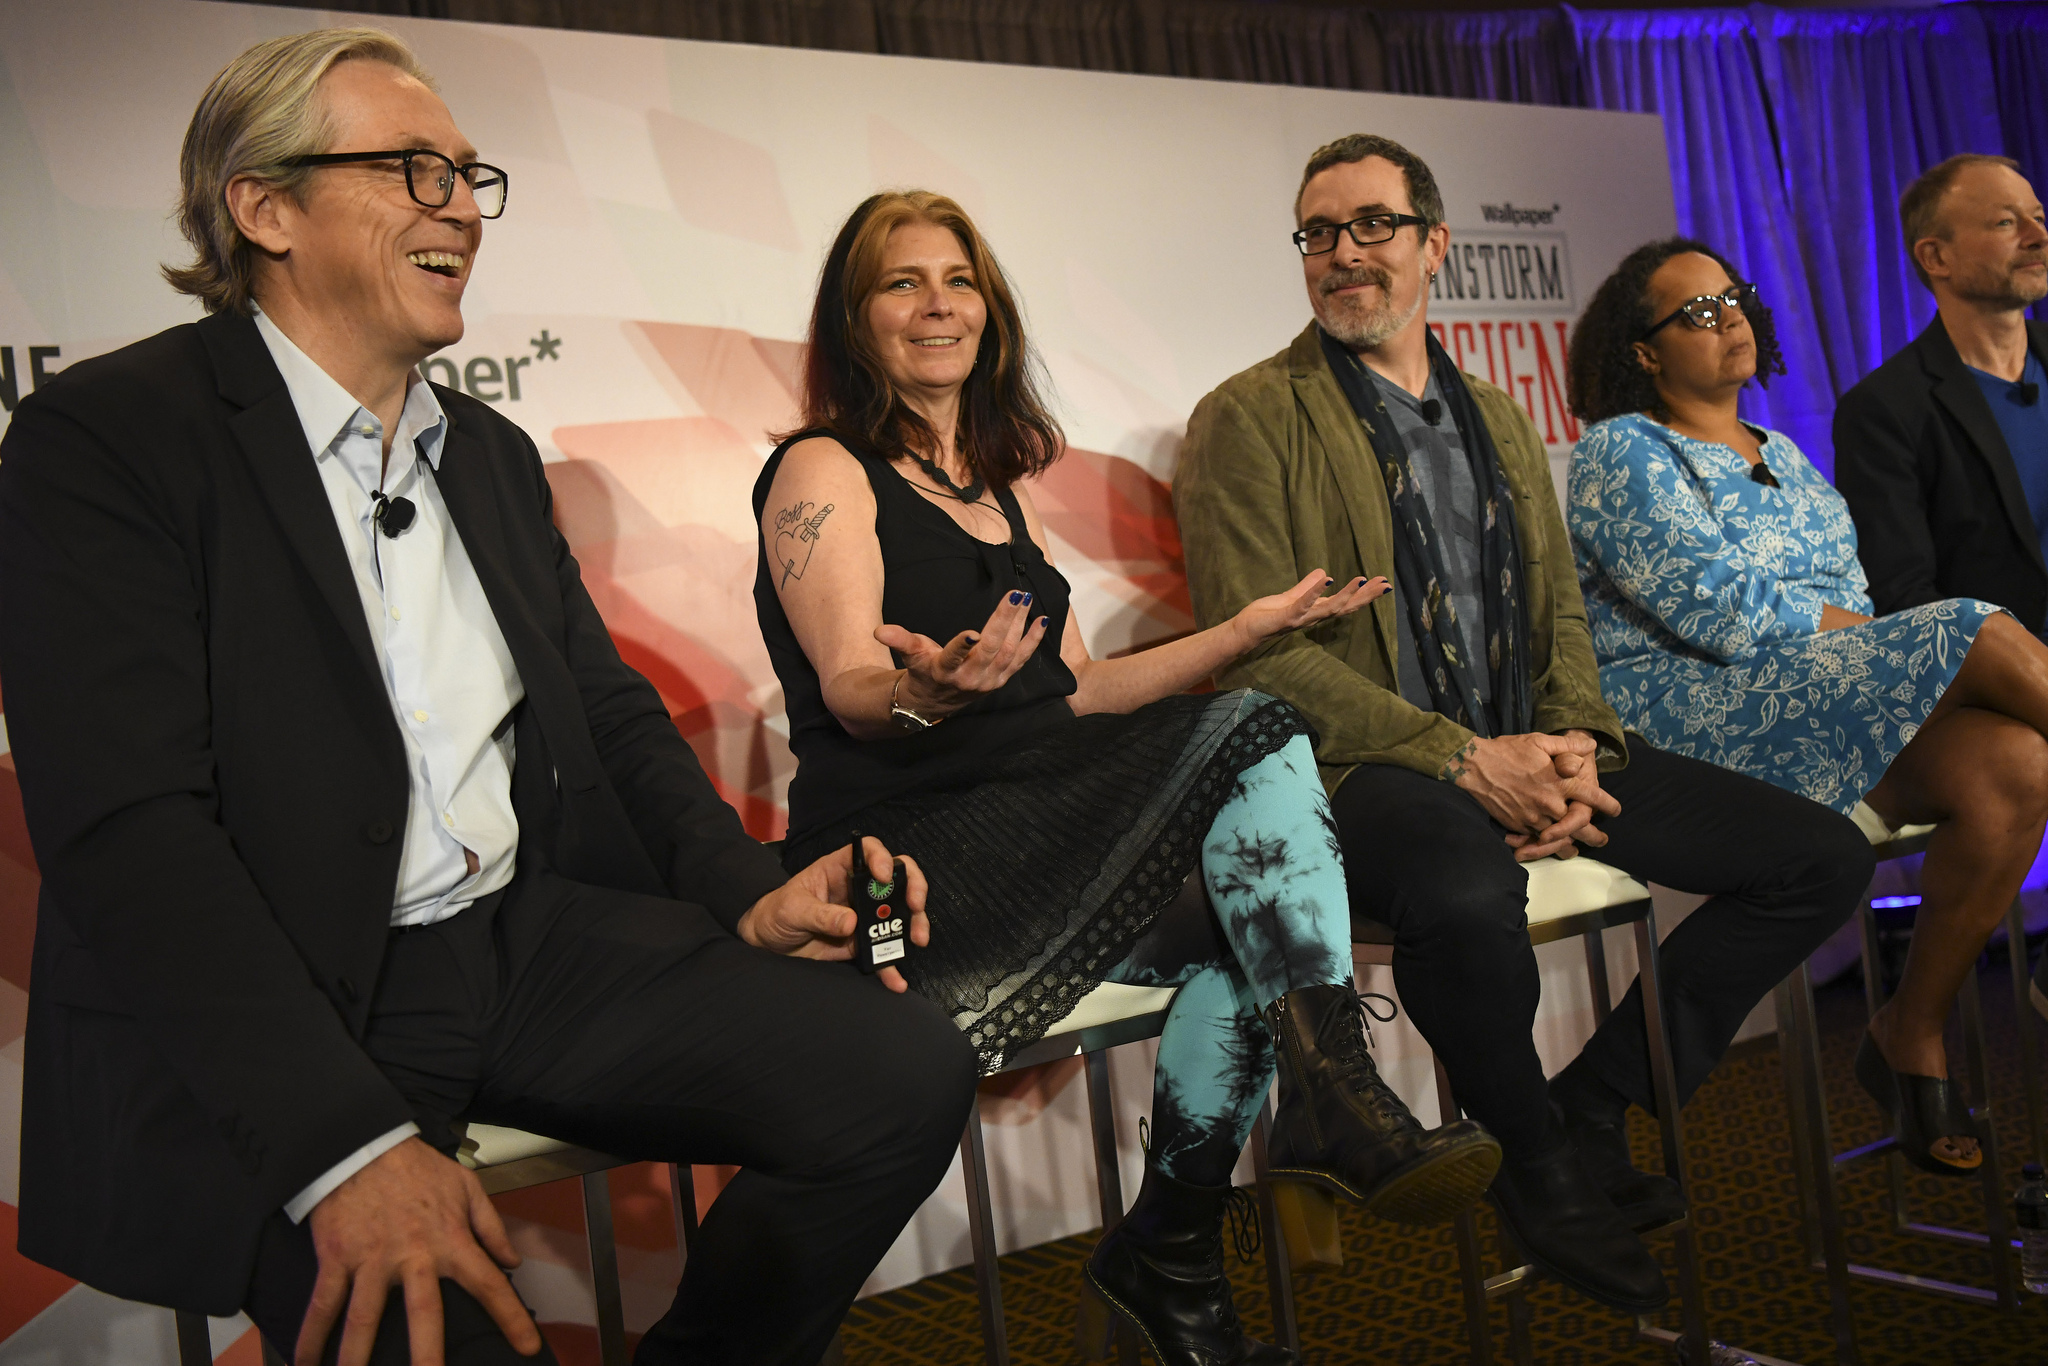 Fortune's Clay Chandler with author Maria Giudice, Justin Maguire of Salesforce, Nalini Kotamraju of Salesforce, and Harry West of Invisible Design at the 2019 Fortune Brainstorm Design conference in Singapore.